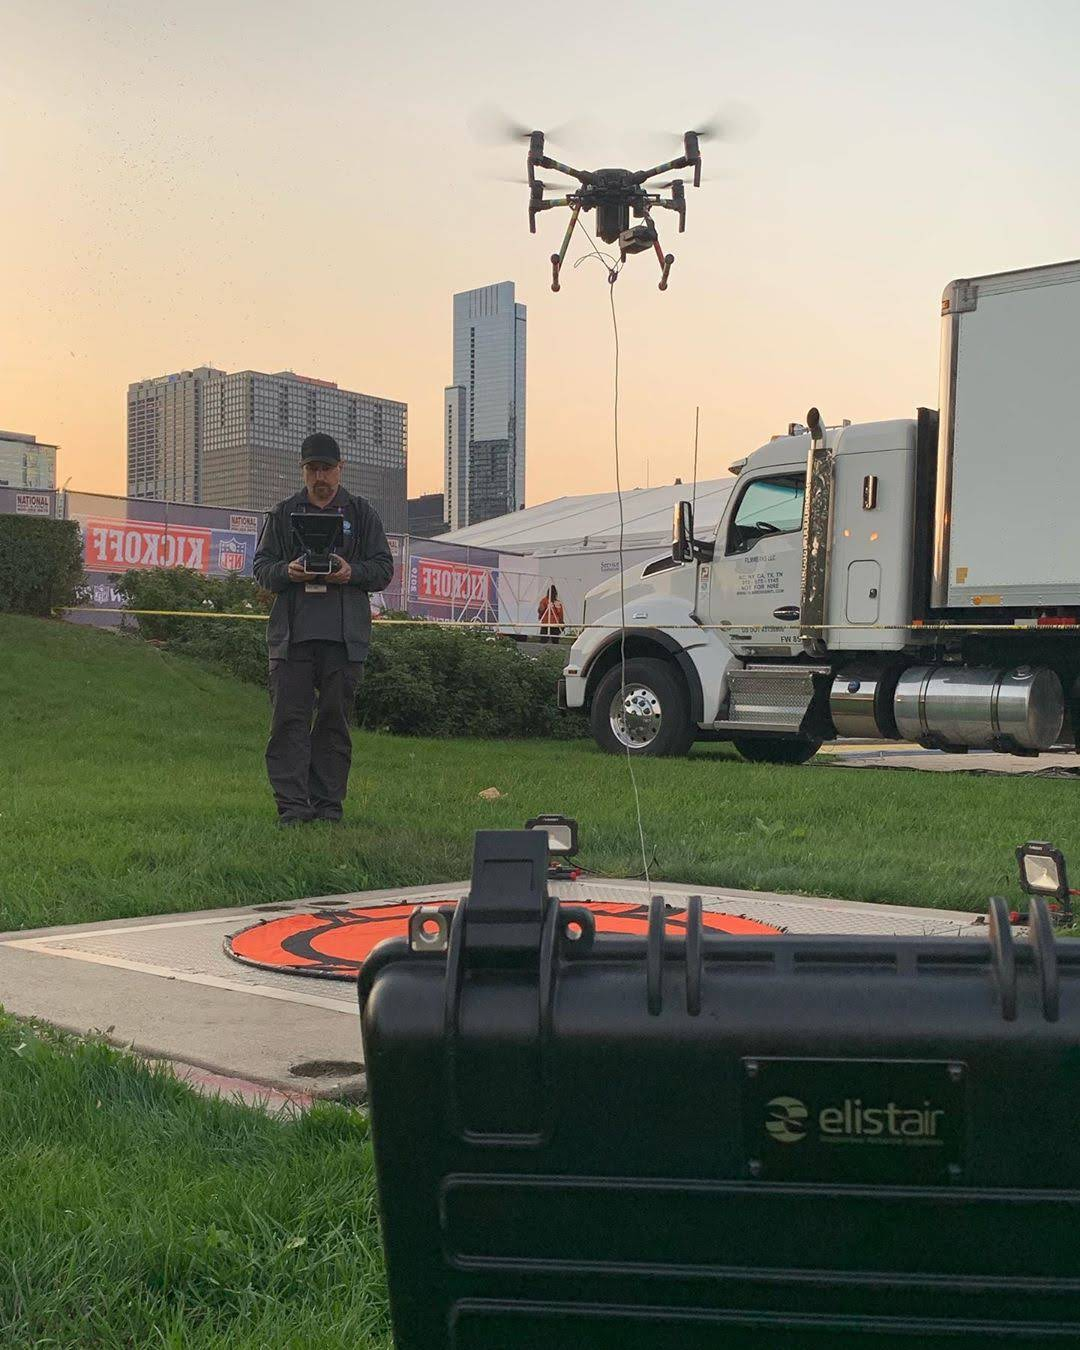 Elistair tethered drones for secured flight